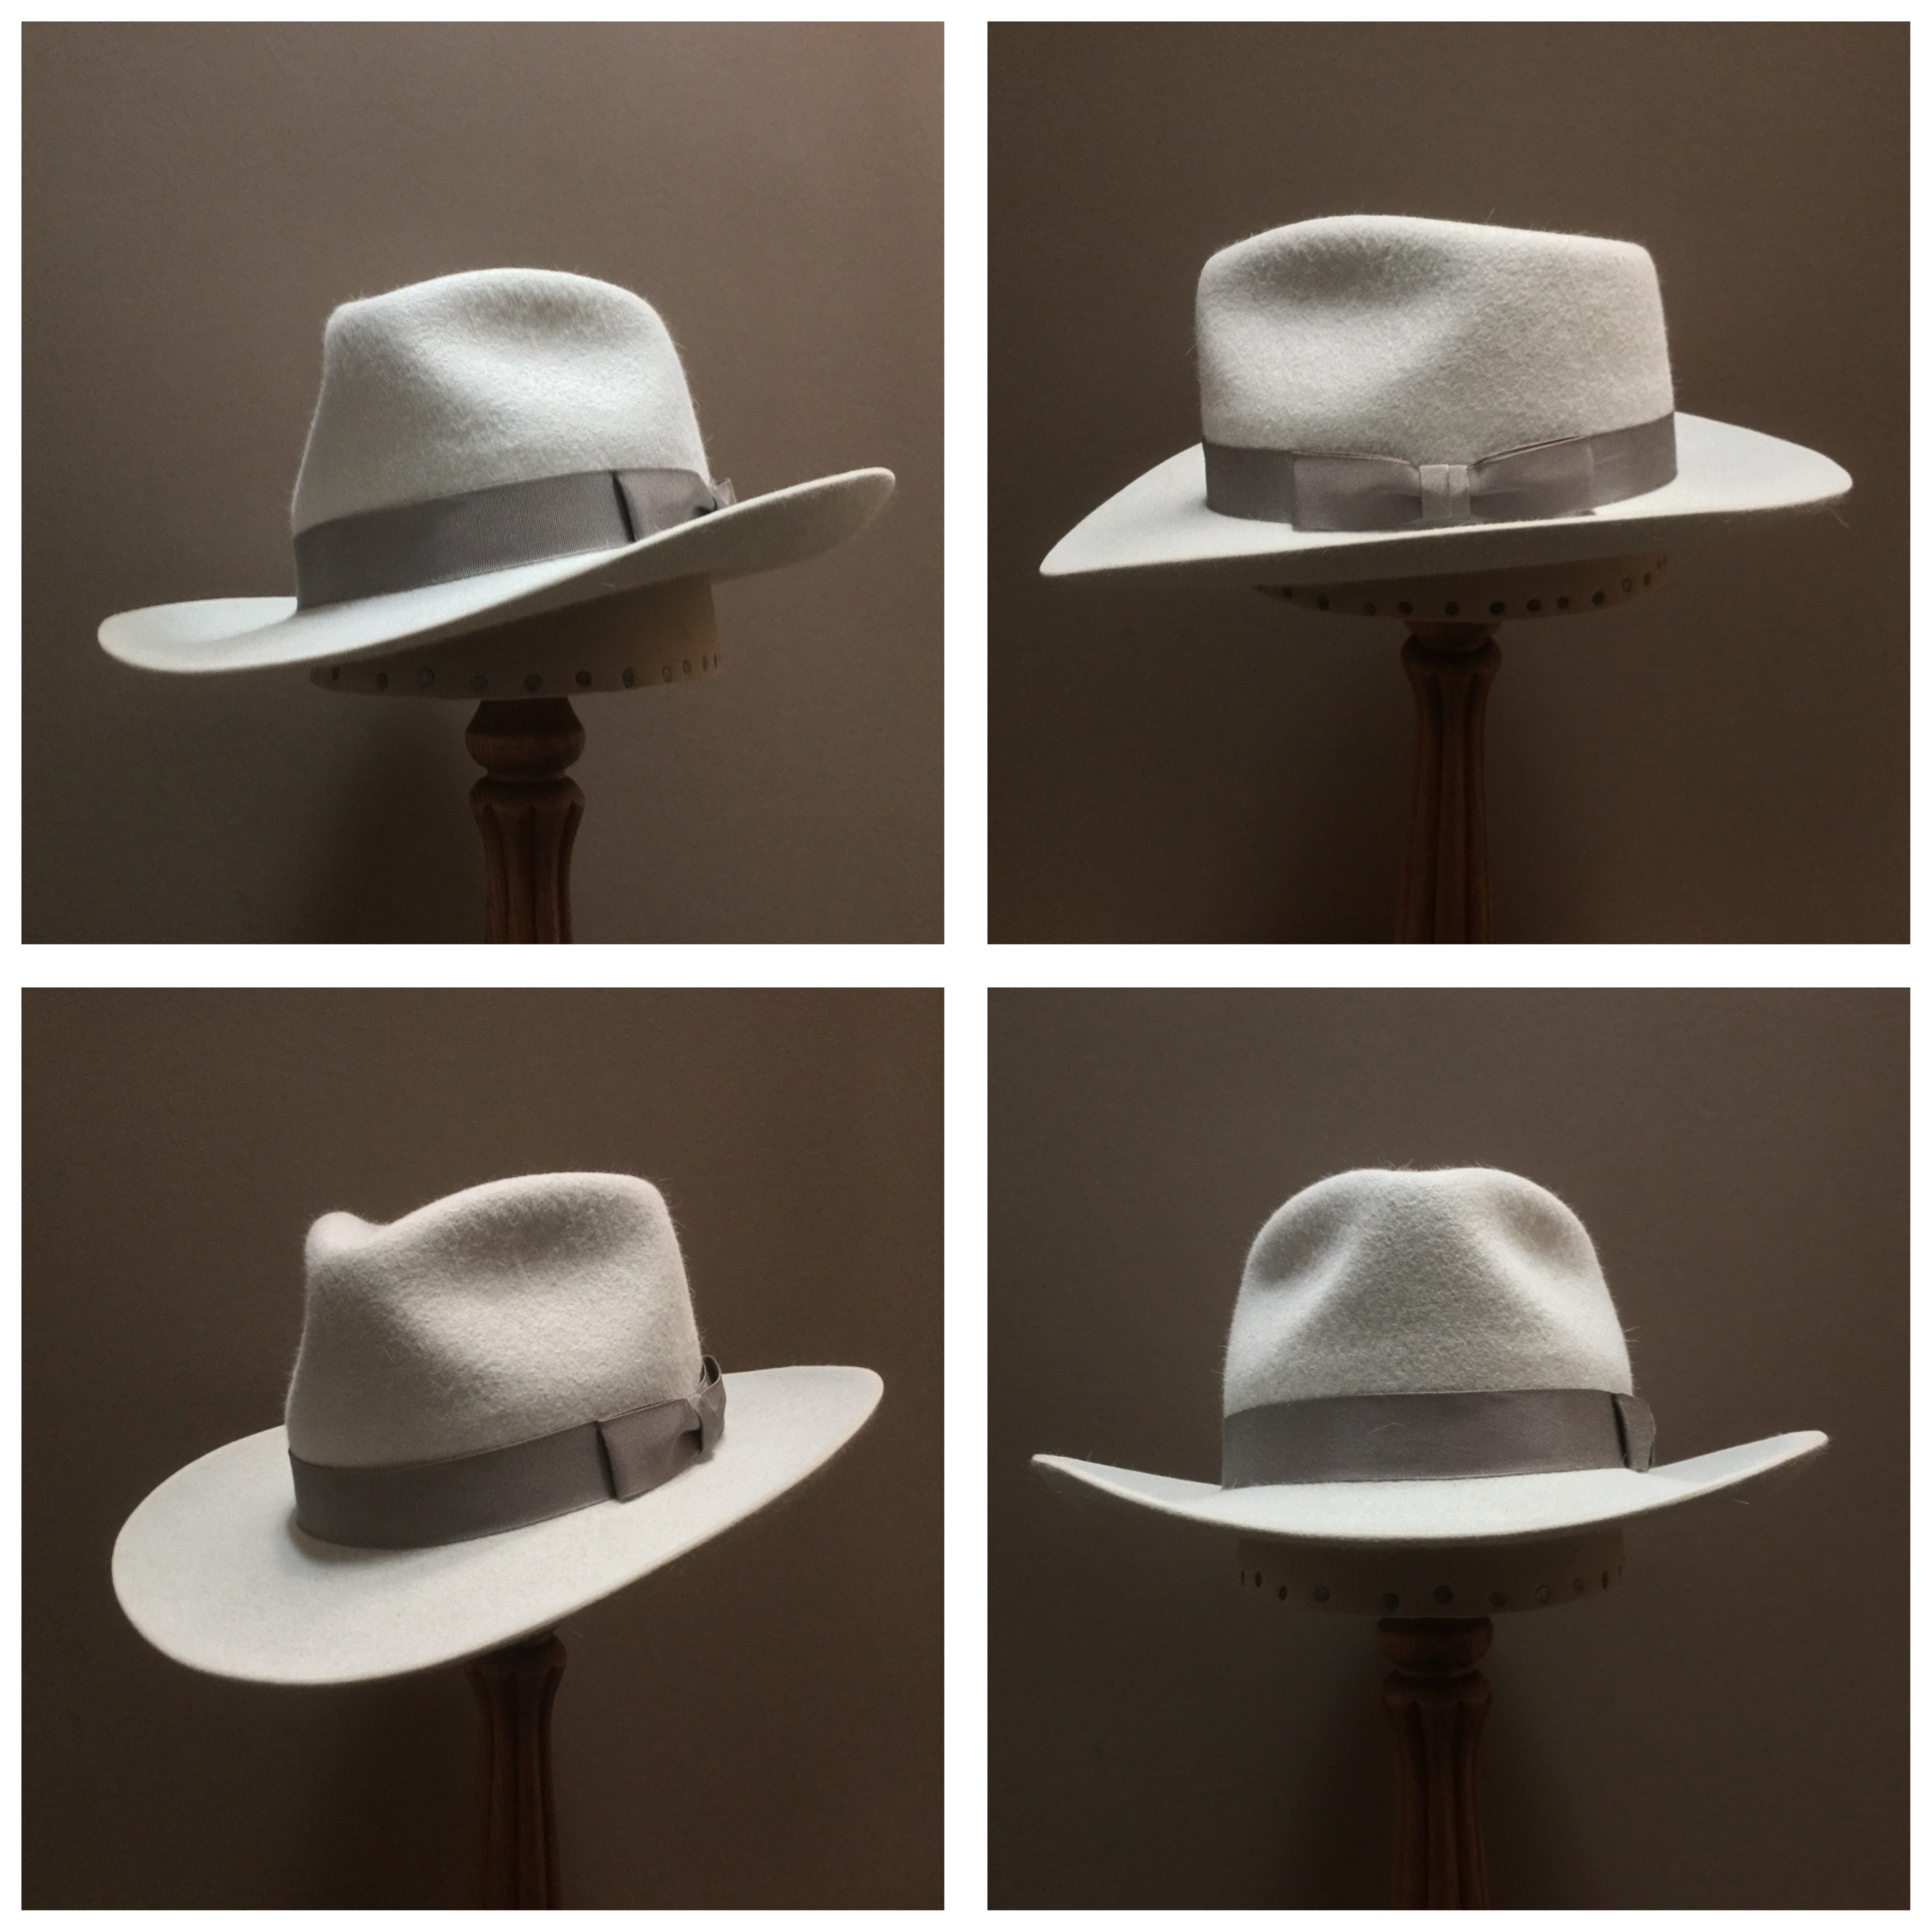 Material: 100% Rabbit Color: Powder Blue Open Block: Pledge Brim Set: Round Up/ 2 7/8 inches Trim: 1 1/2 inch Grosgrain Ribbon with Pleated Bow